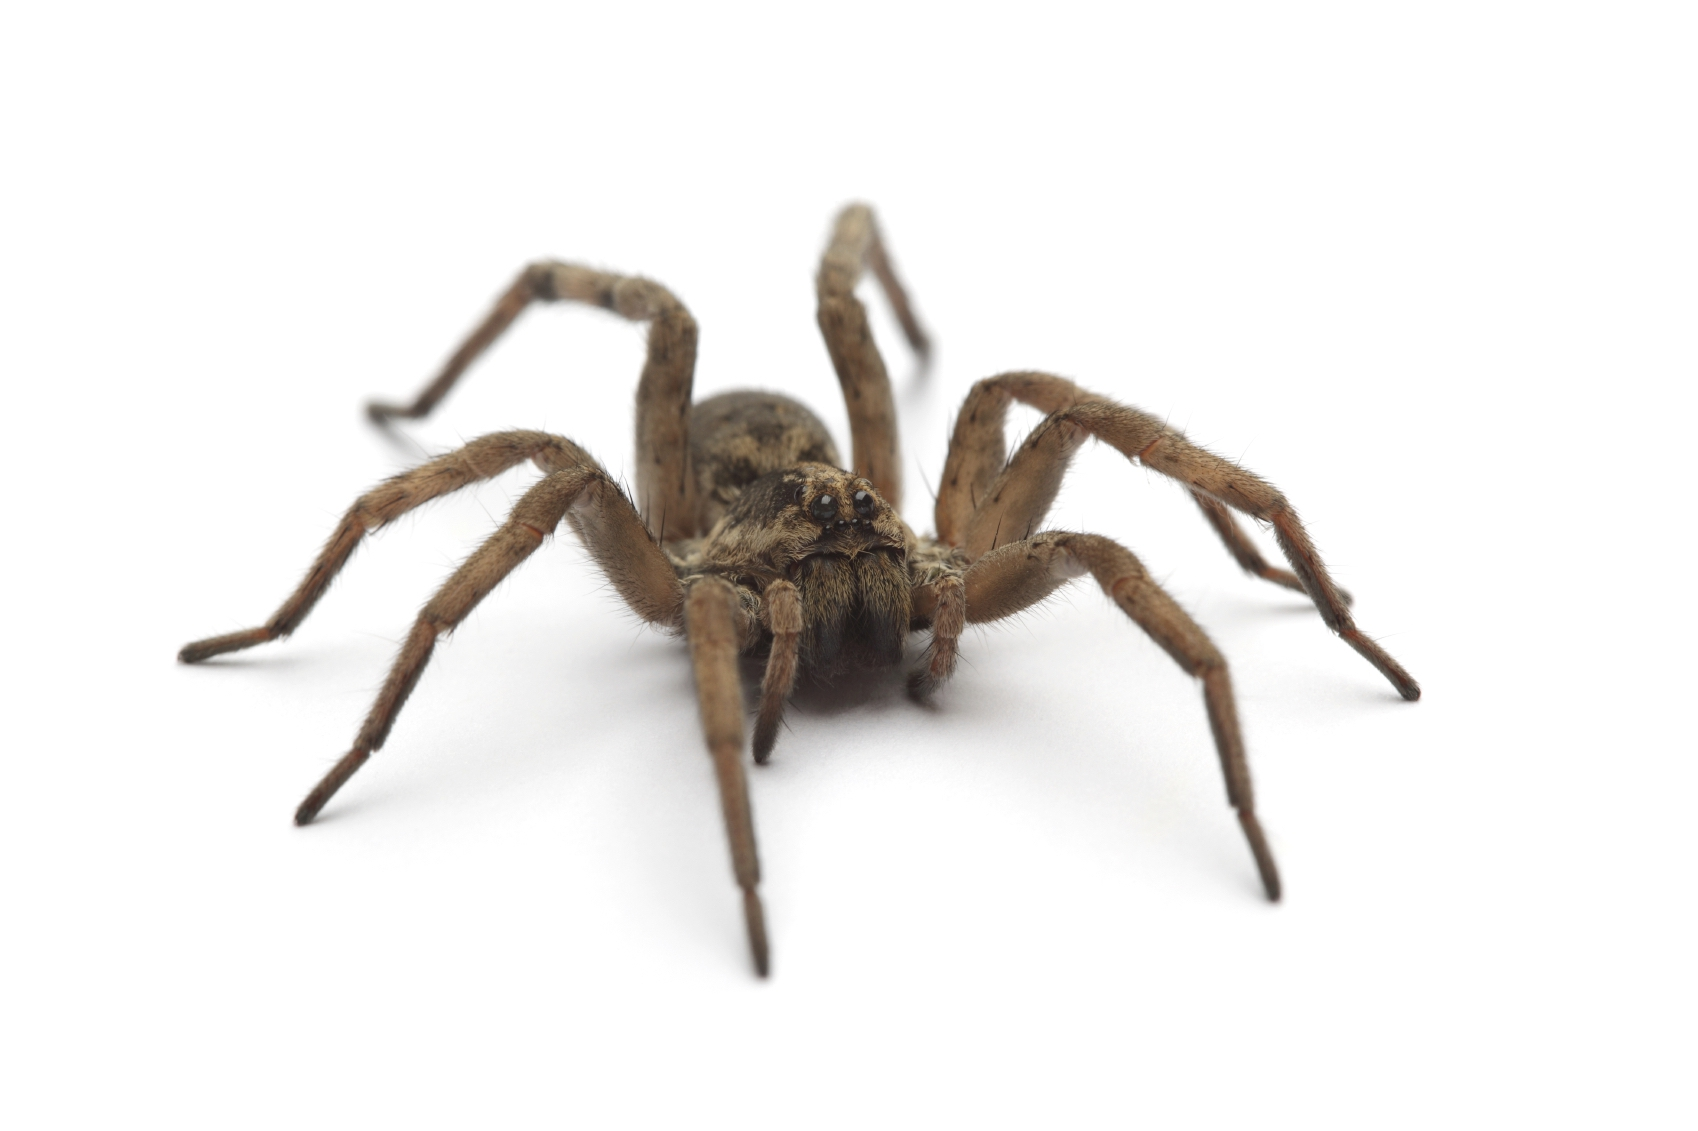 fear of spiders This article originally appeared on vice australia you might have suspected this for a while, but your dumb, crippling fear of snakes and spiders isn't your fault it's instinctual scientists now have conclusive evidence to show humans have evolved with a hardwired fear of snakes and spiders this.